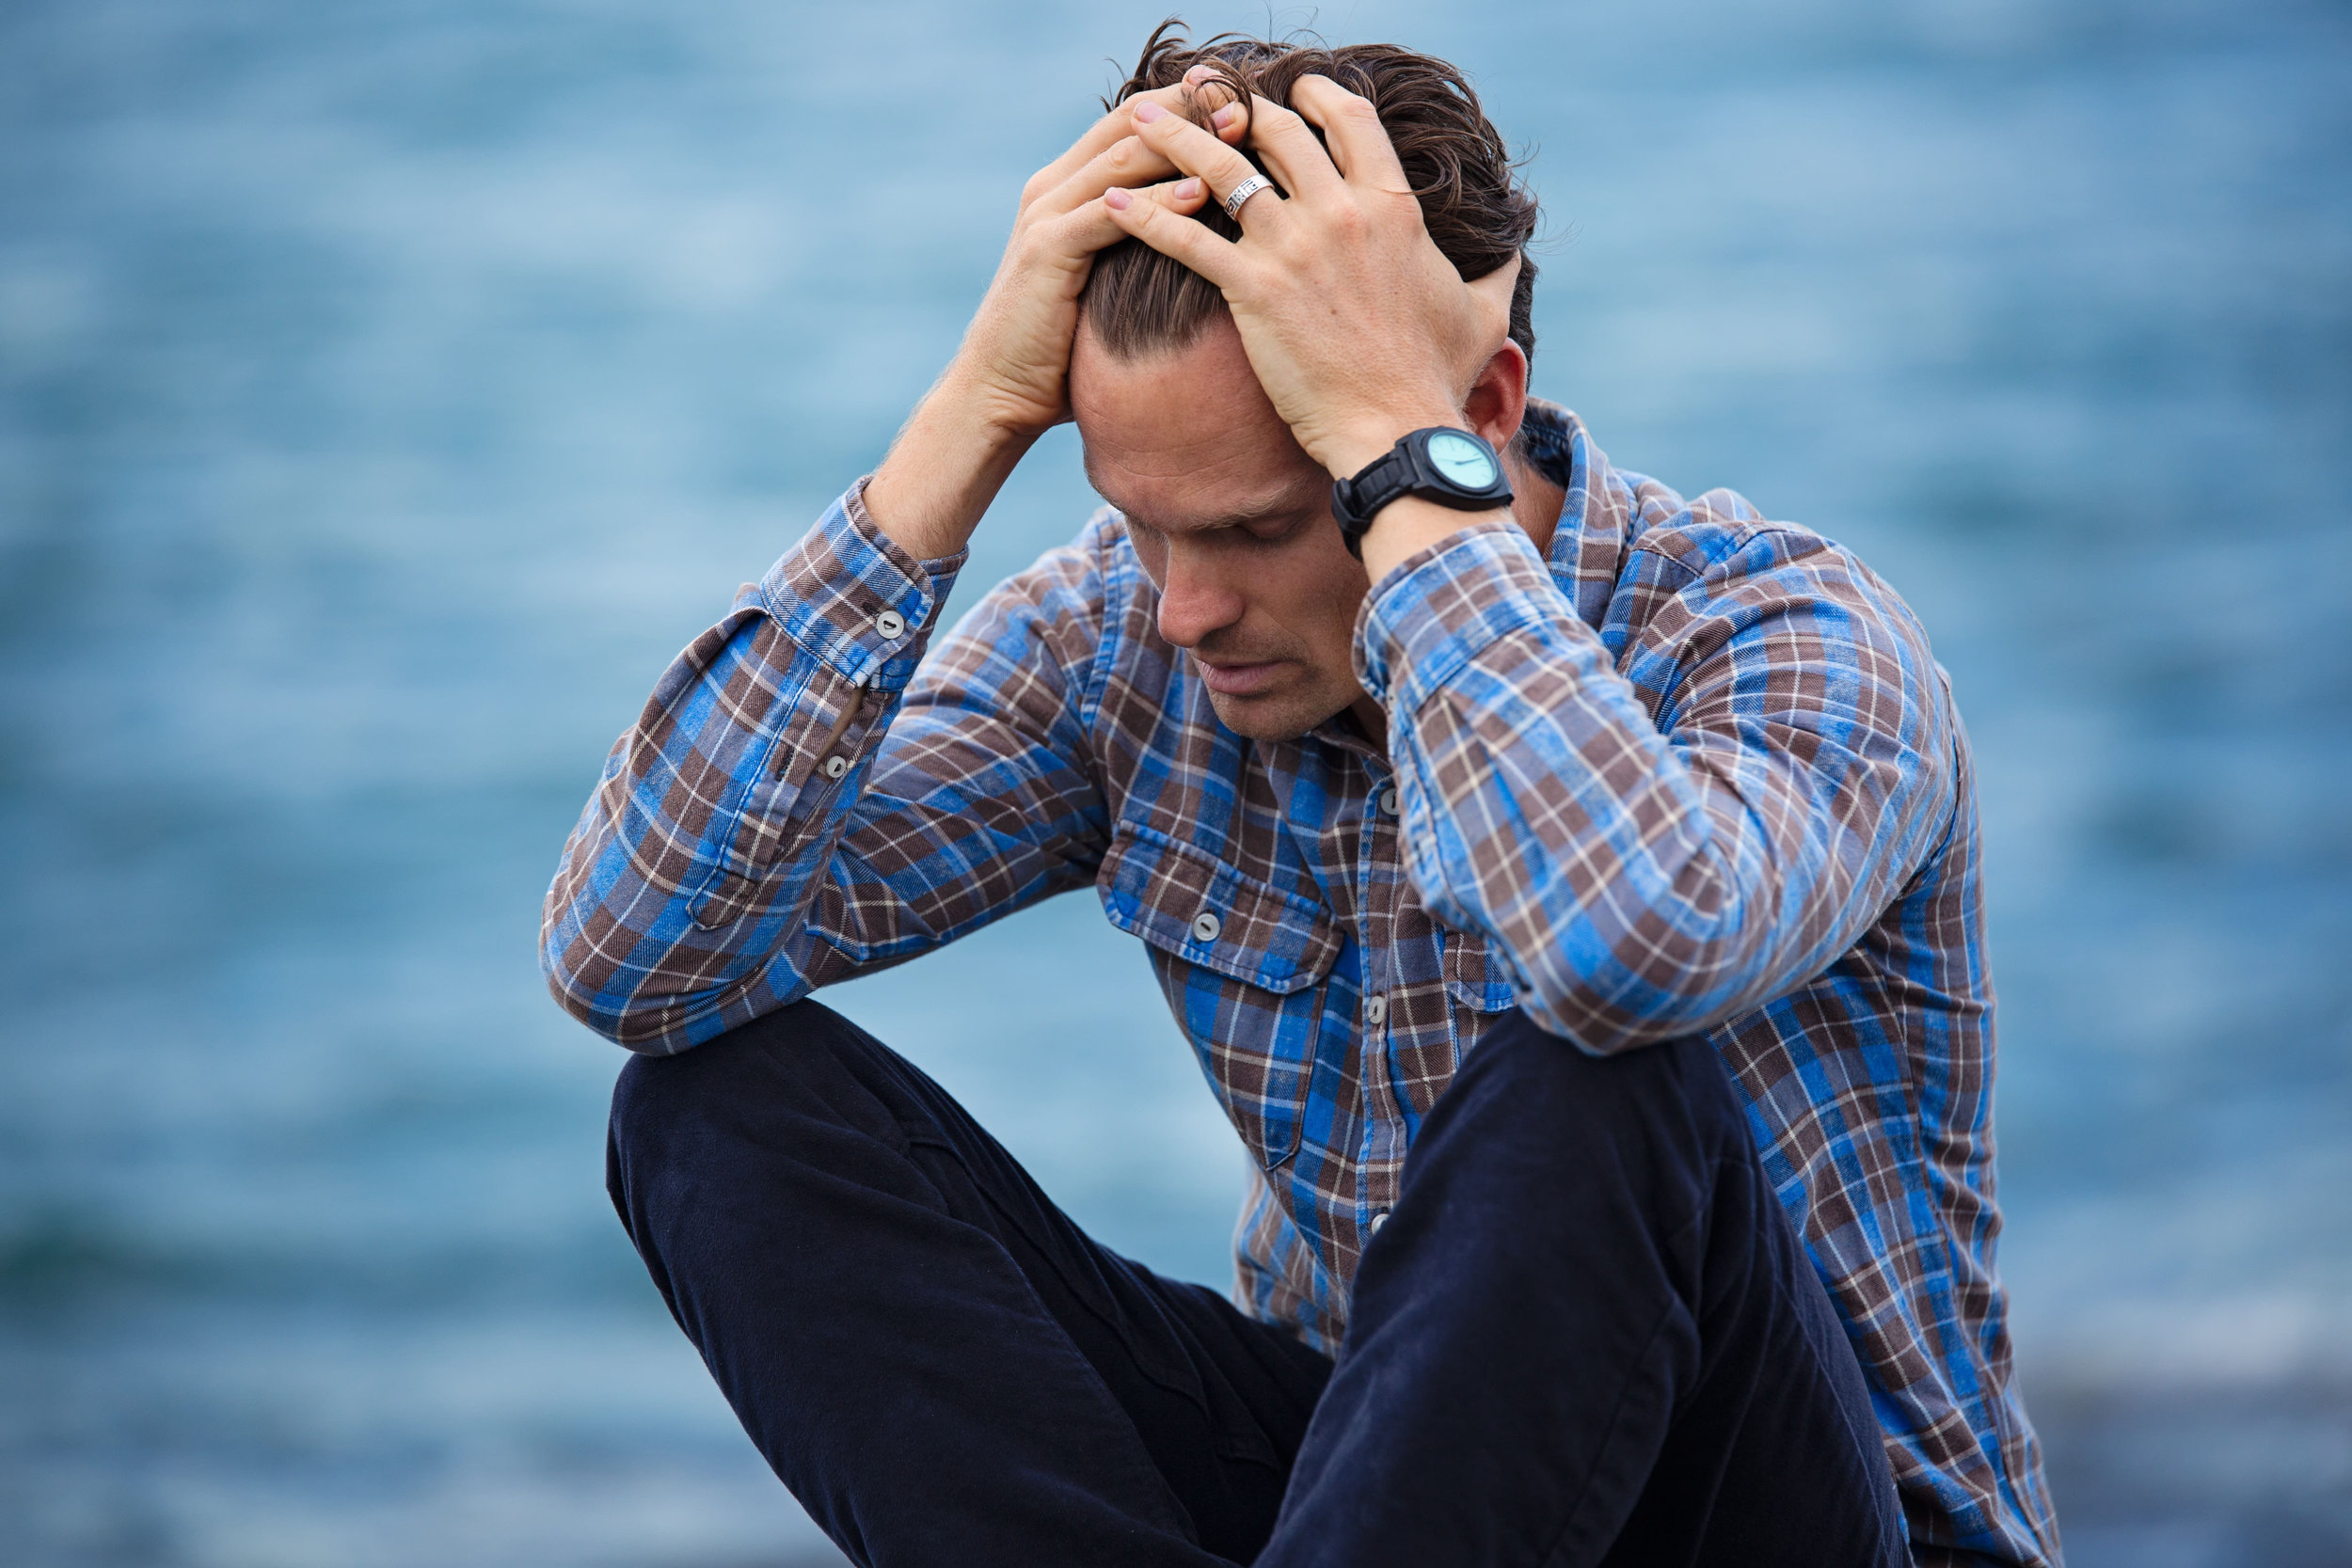 How can I tell if I'm experiencing grief or depression?